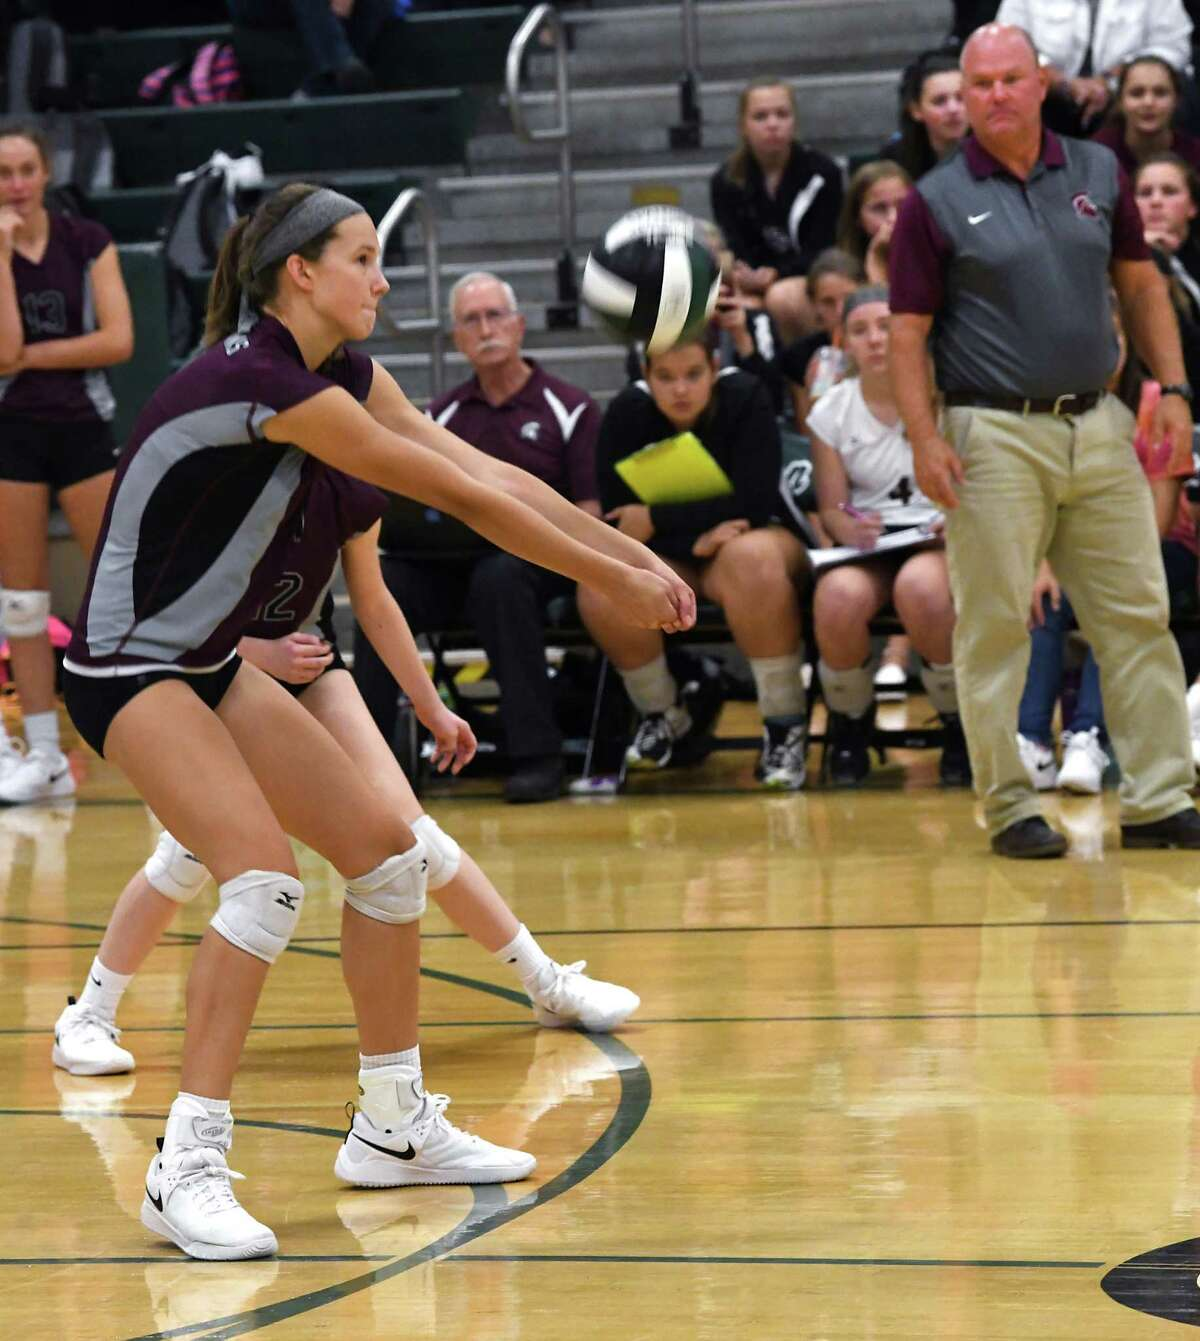 Burnt Hills' Carlie Rzeszotarski returns the ball during a volleyball match against Shenendehowa on Thursday, Sept. 12, 2019 in Clifton Park, N.Y. (Lori Van Buren/Times Union)